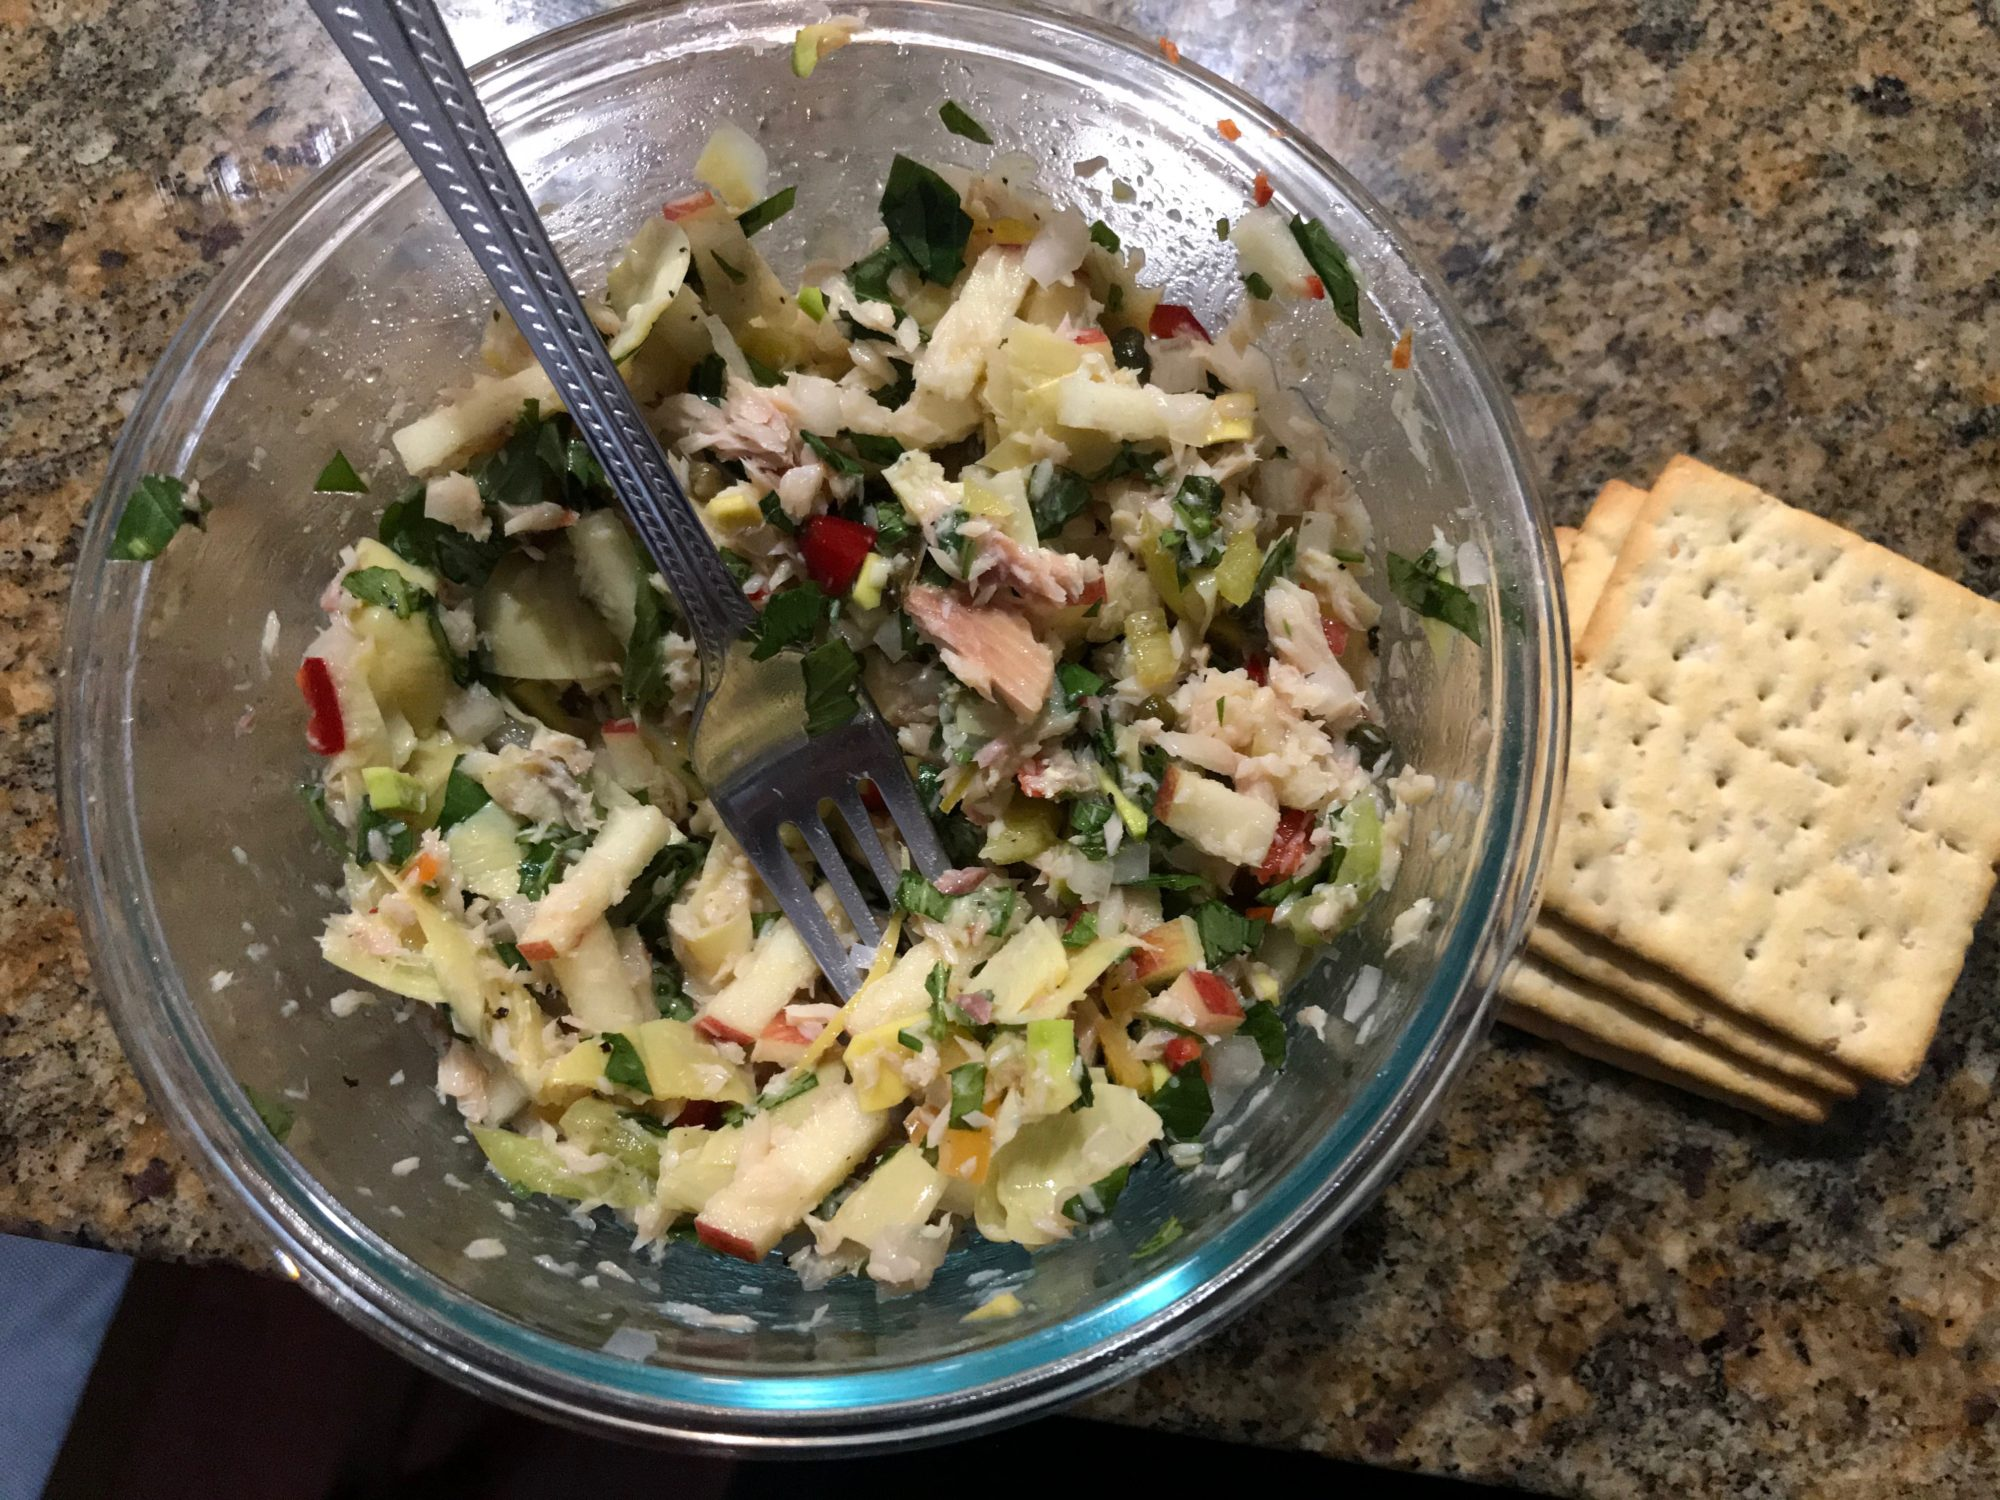 finished slaw with crackers